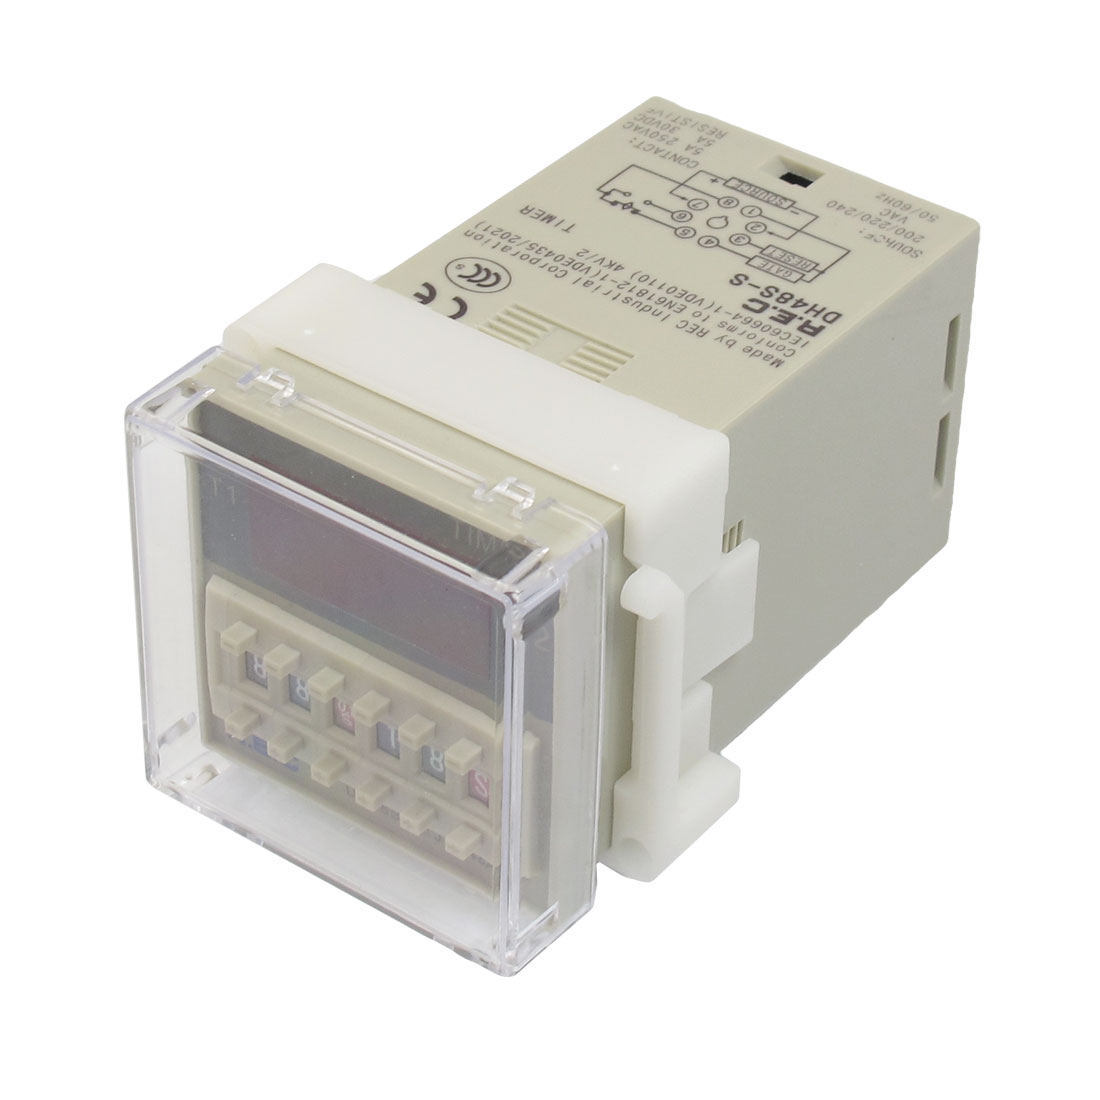 AC 220V Digits Presettable Programmable Circle Double Time Delay Relay DH48S-S